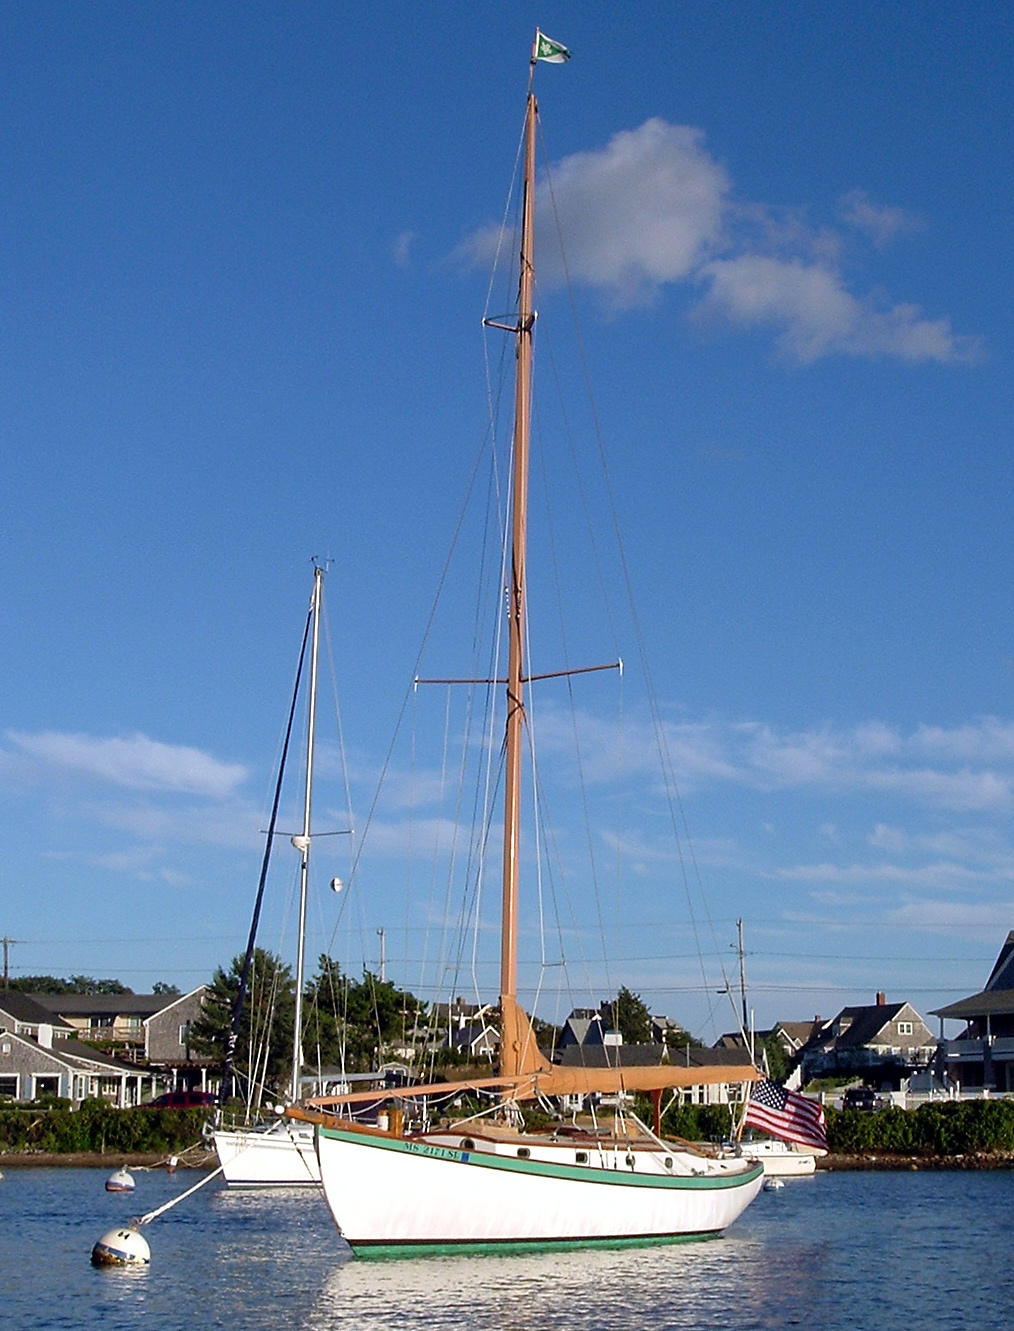 WIND SONG, Concordia 28 keel cutter.